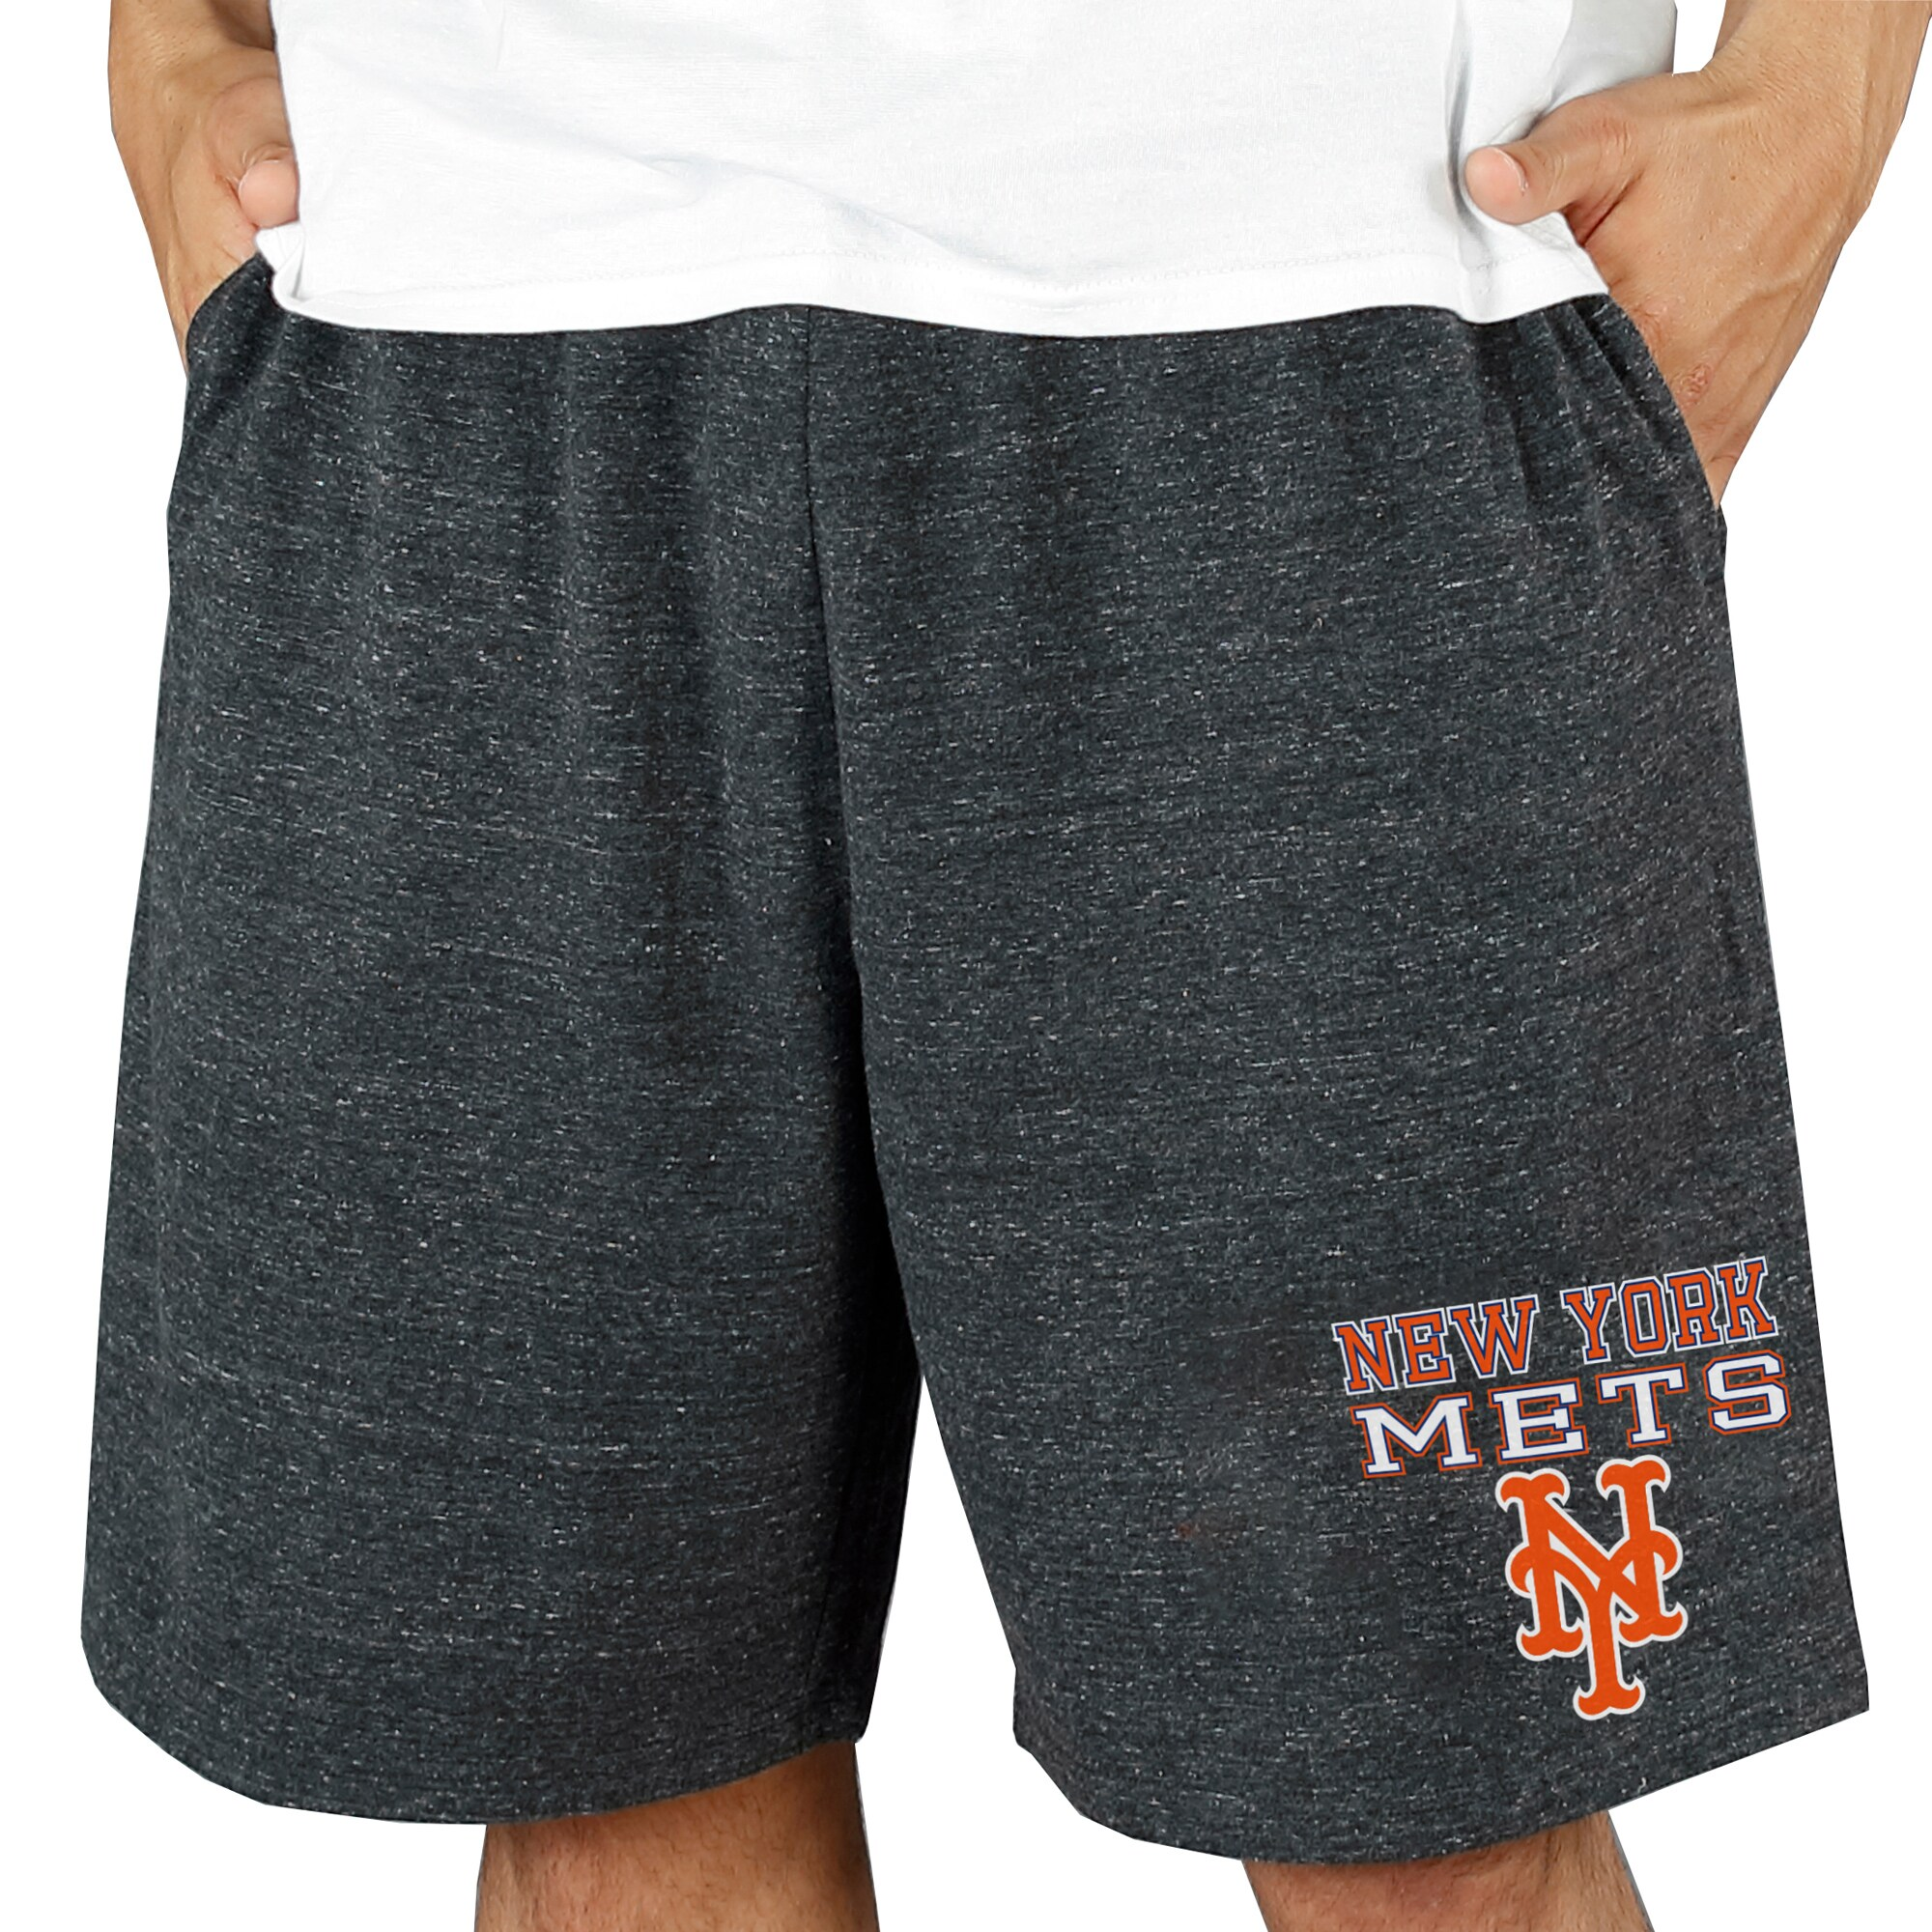 New York Mets Concepts Sport Pitch Knit Jam Shorts - Charcoal